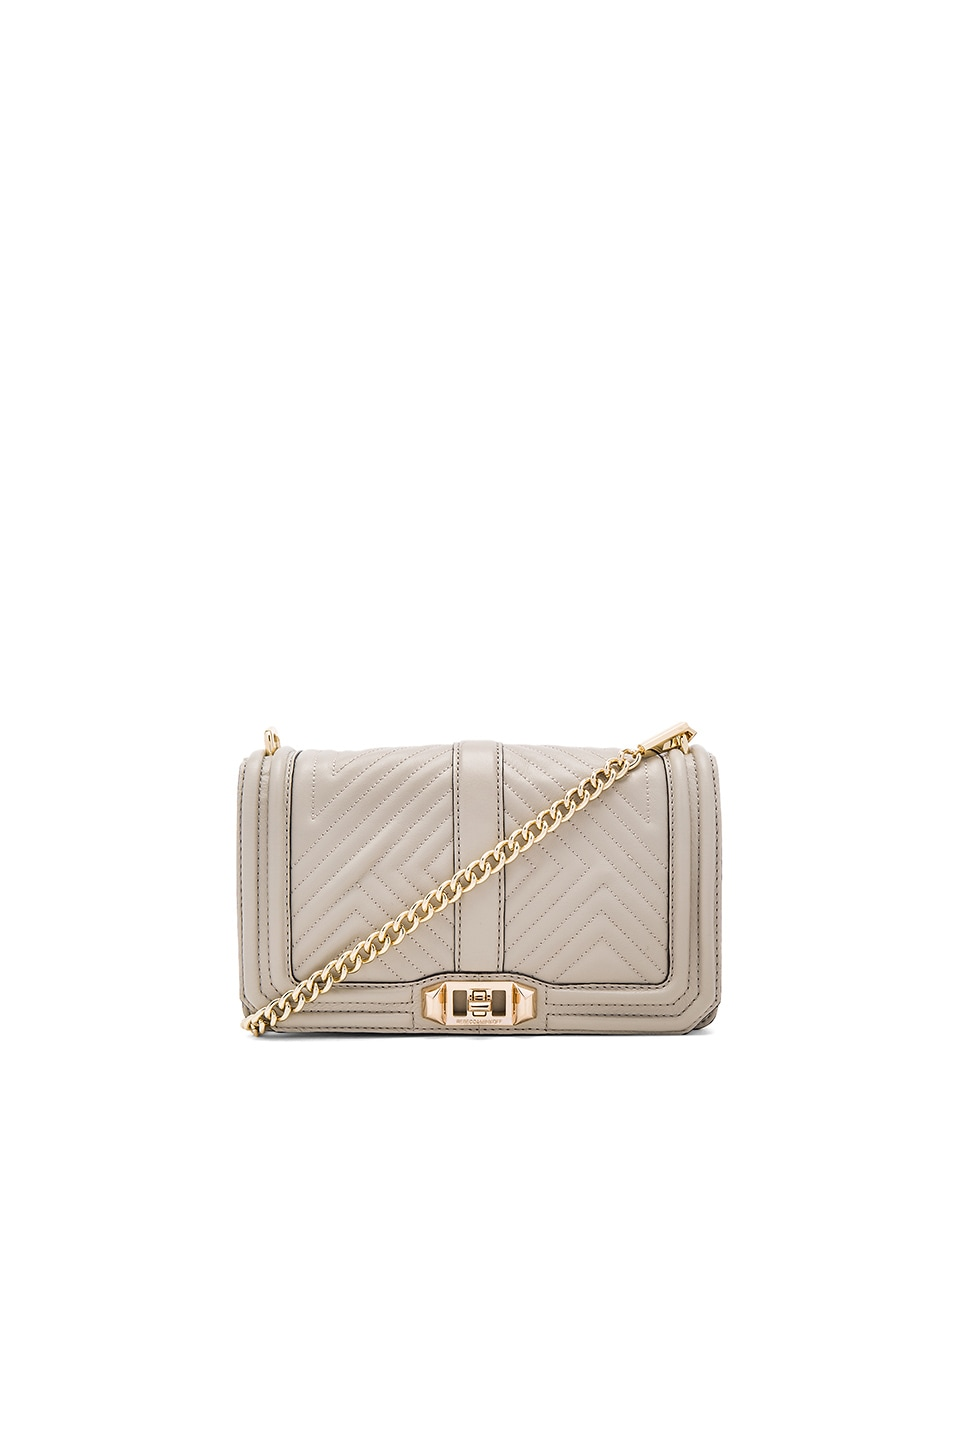 Rebecca Minkoff Geo Quilted Love Crossbody Bag in Khaki